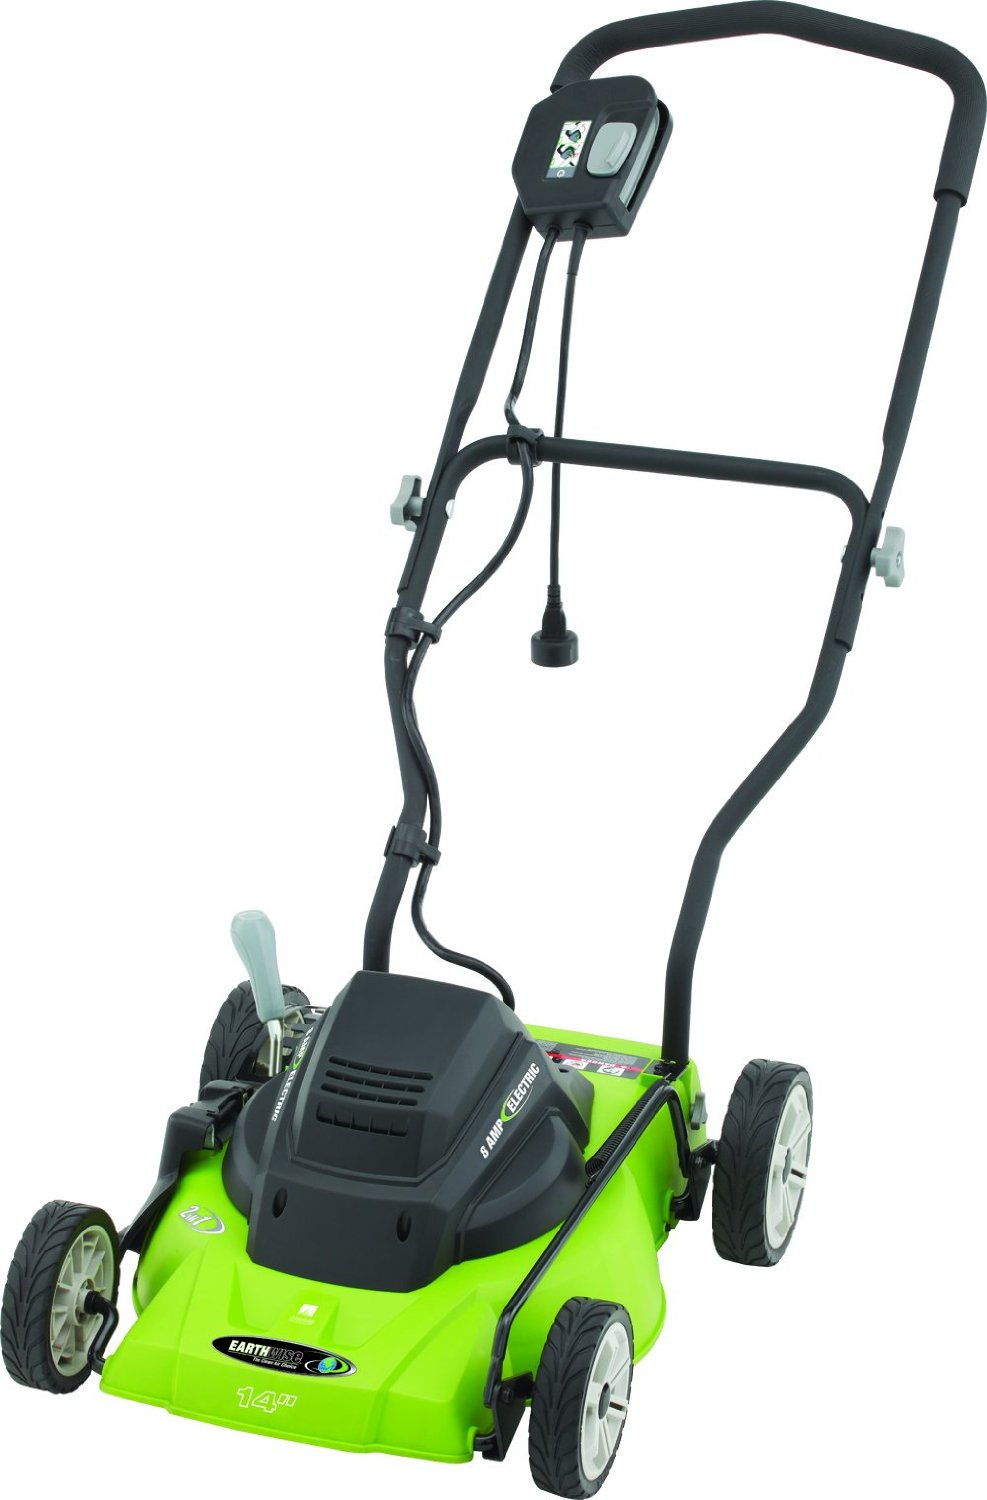 Earthwise 14-Inch 8-Amp Side Discharge/Mulching Corded Electric Lawn Mower, Model 50214